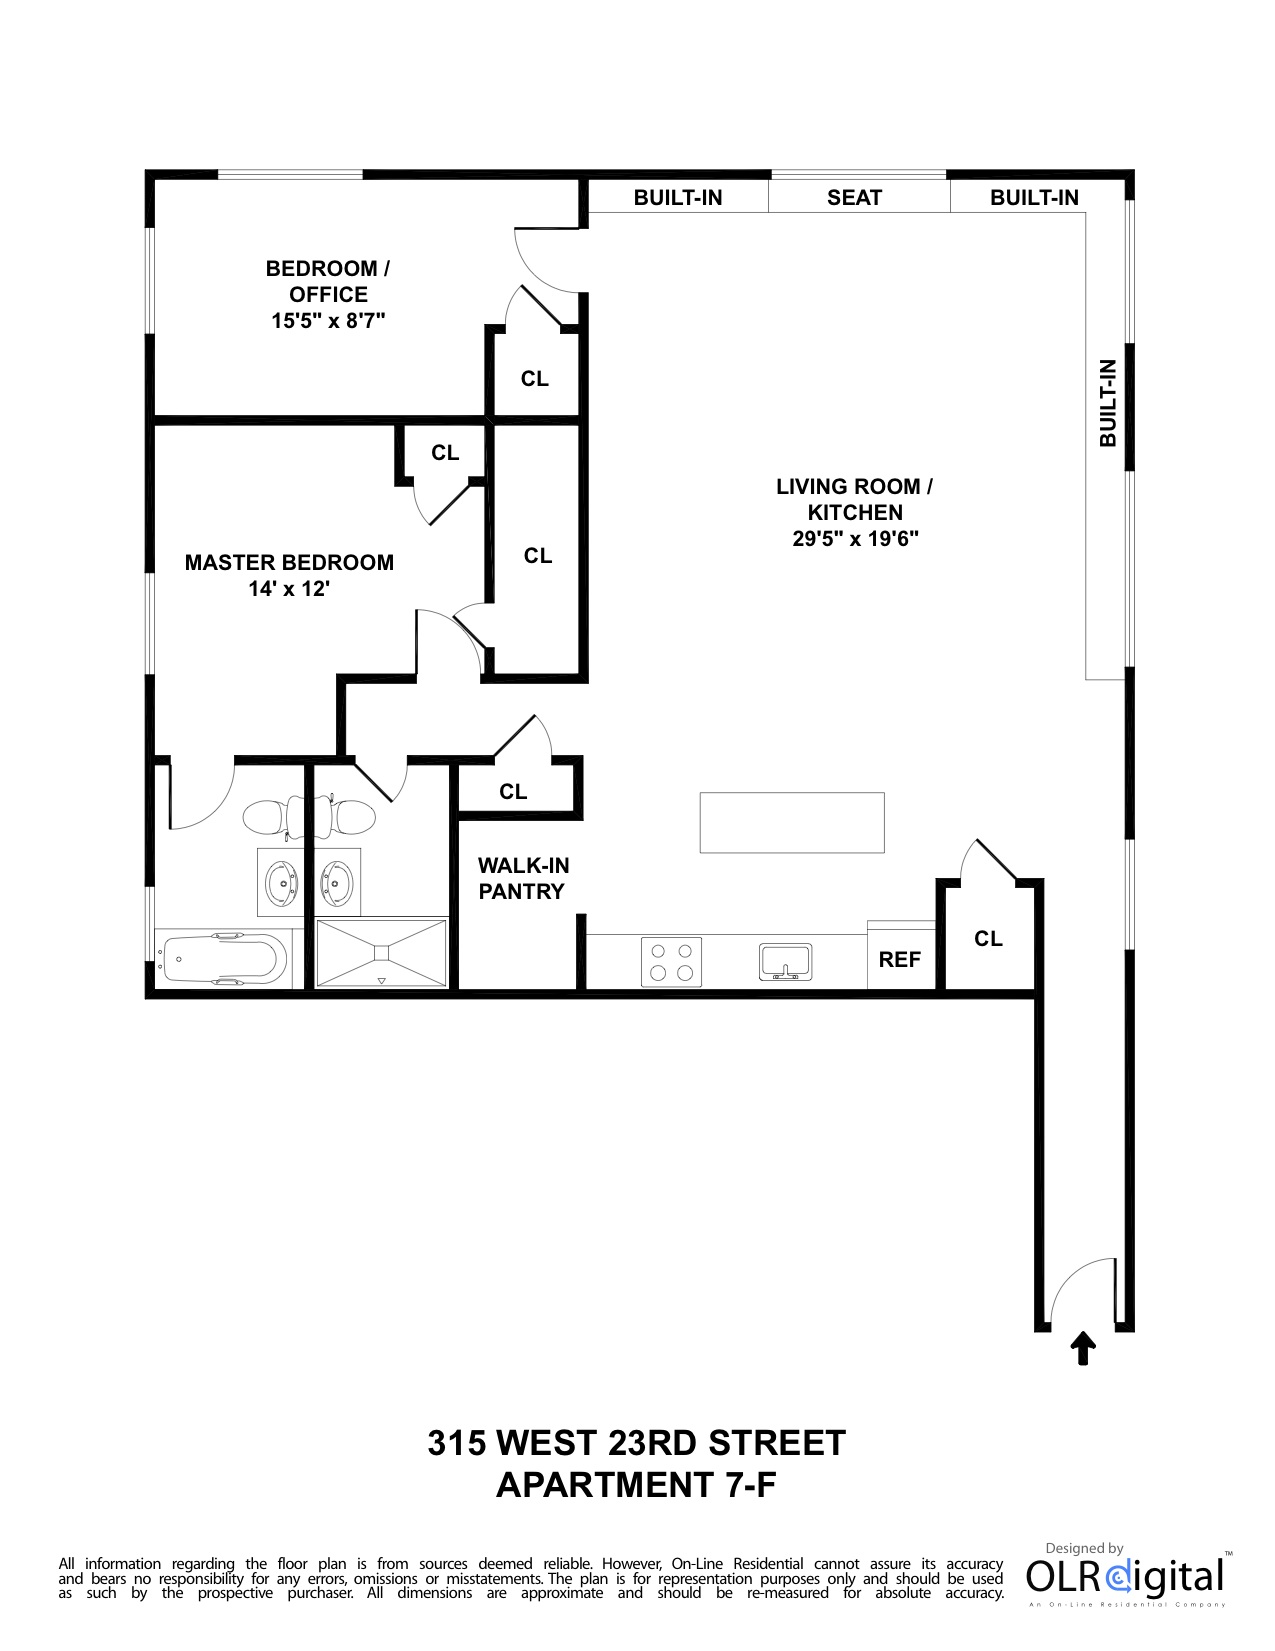 Exquisite Chelsea 2 Bedroom & 2 Bath Loft